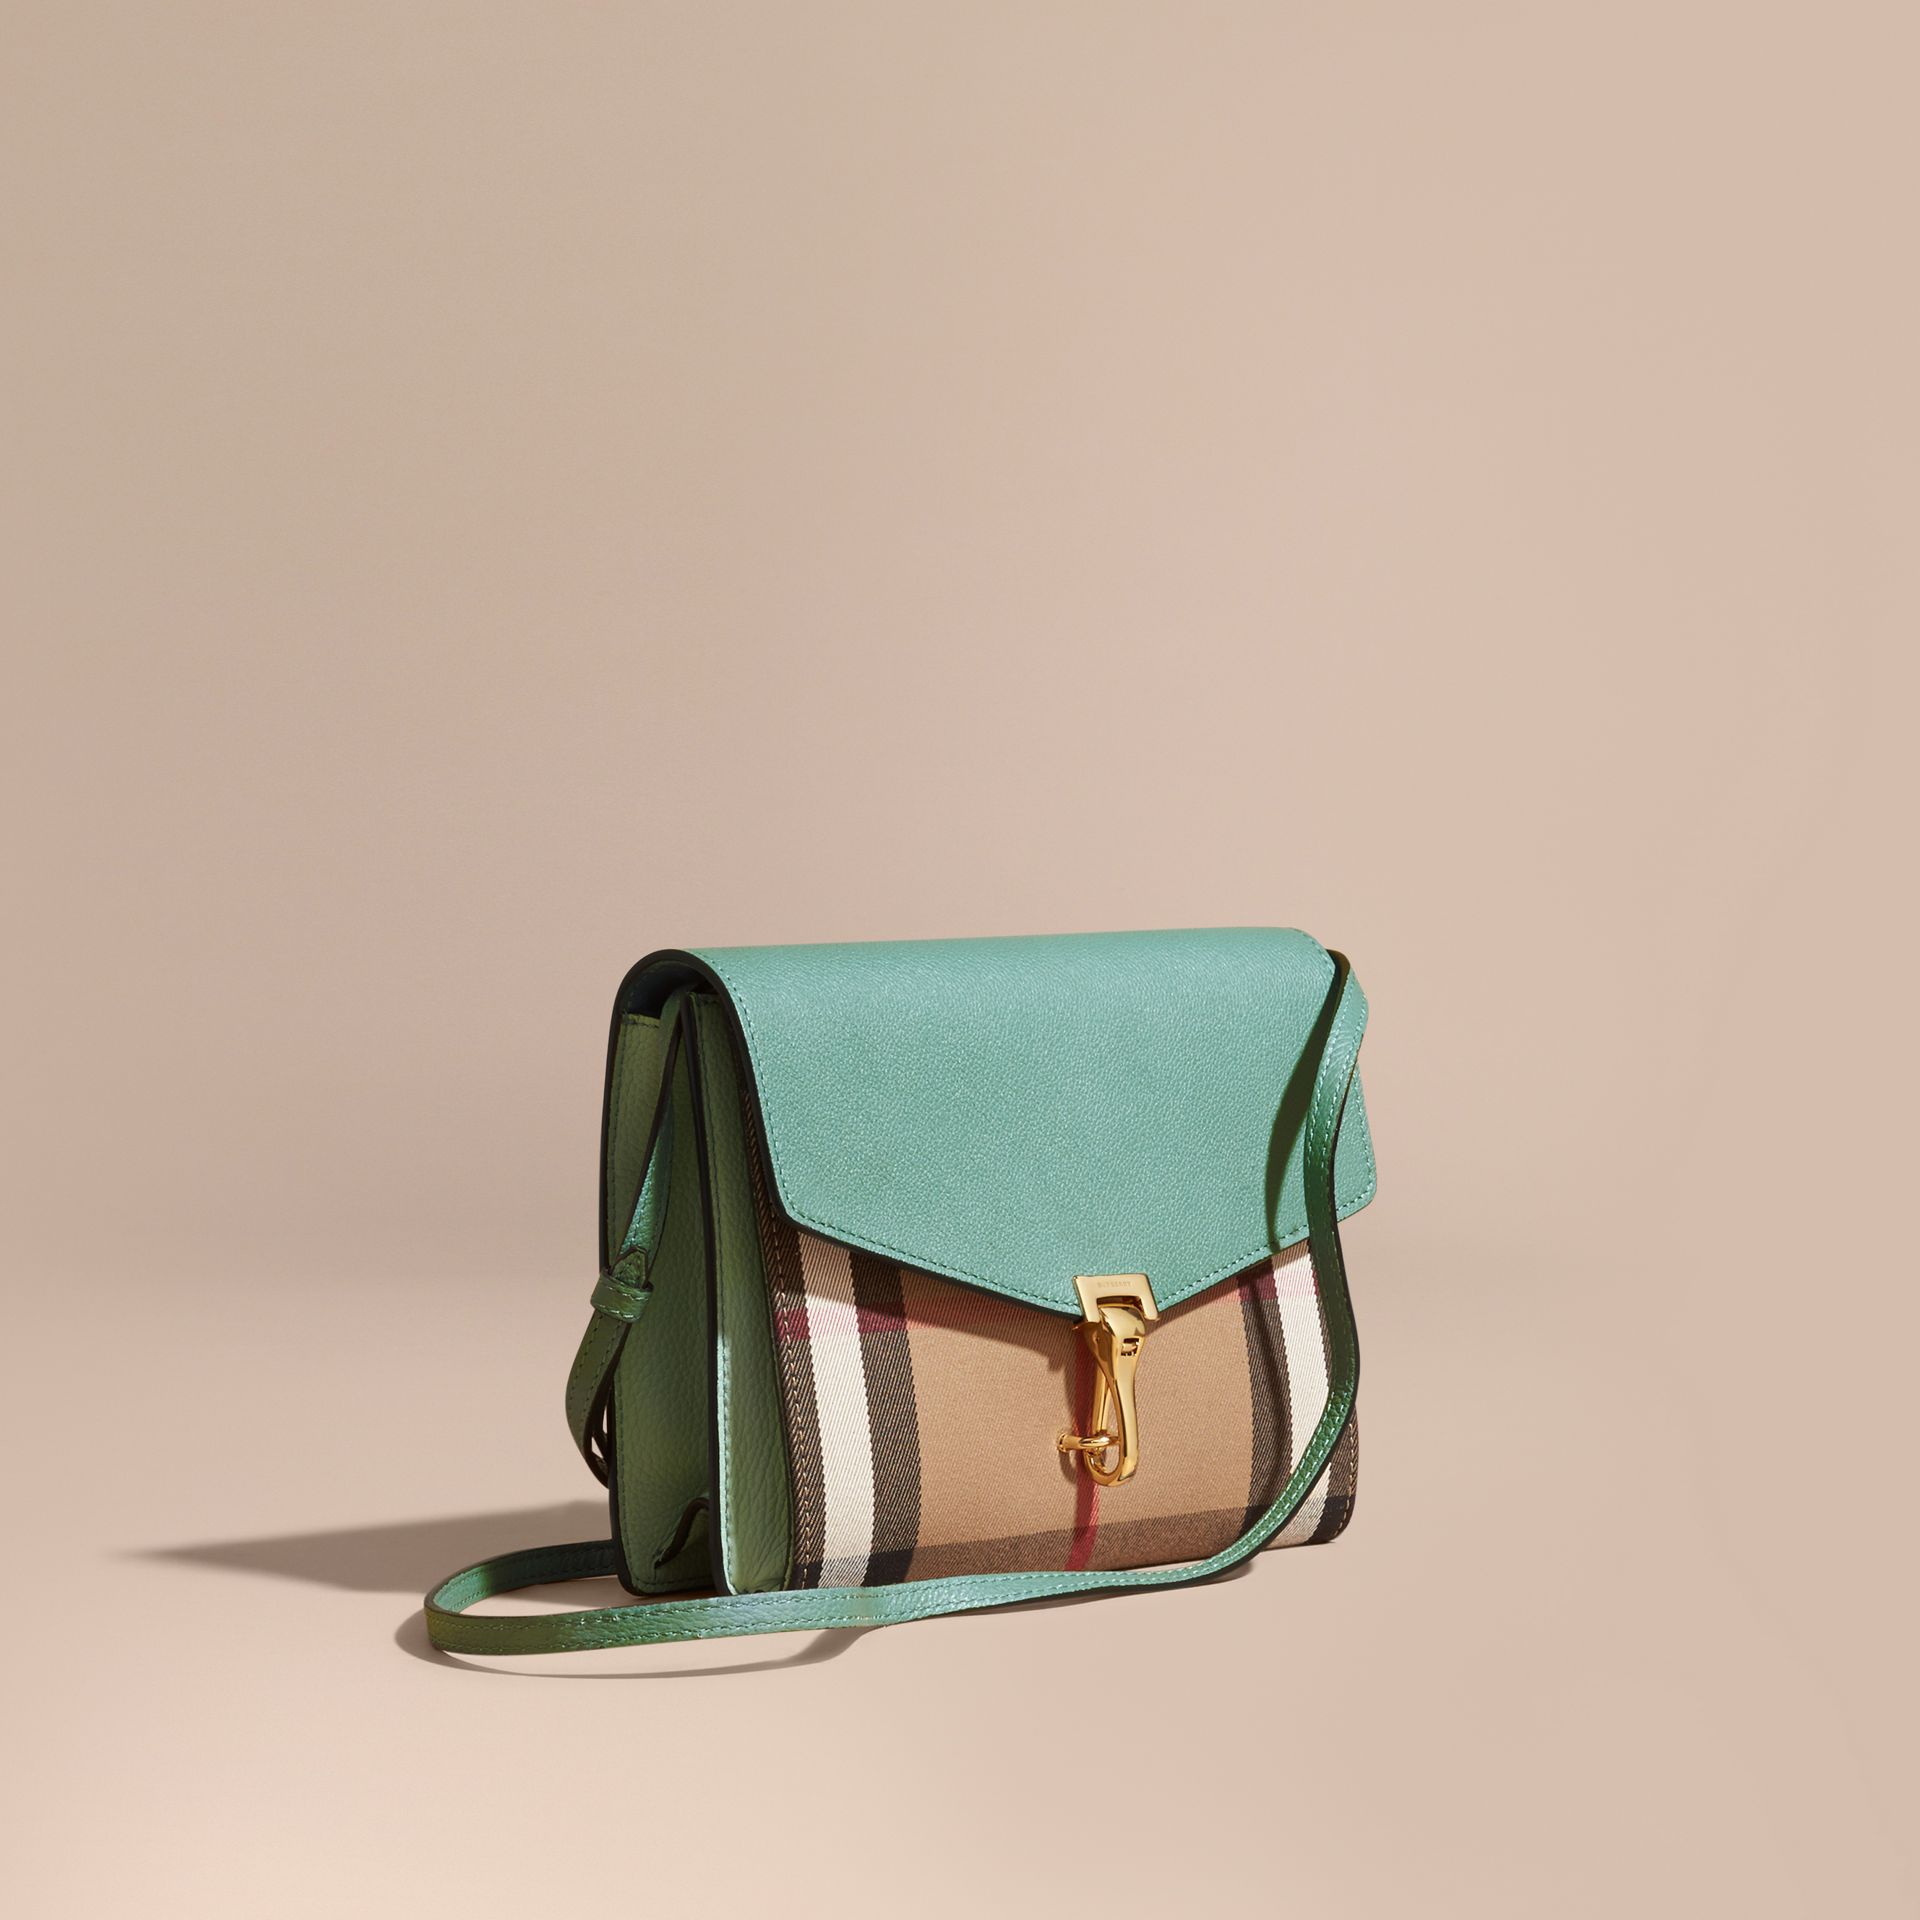 Celadon blue Small Leather and House Check Crossbody Bag Celadon Blue - gallery image 1